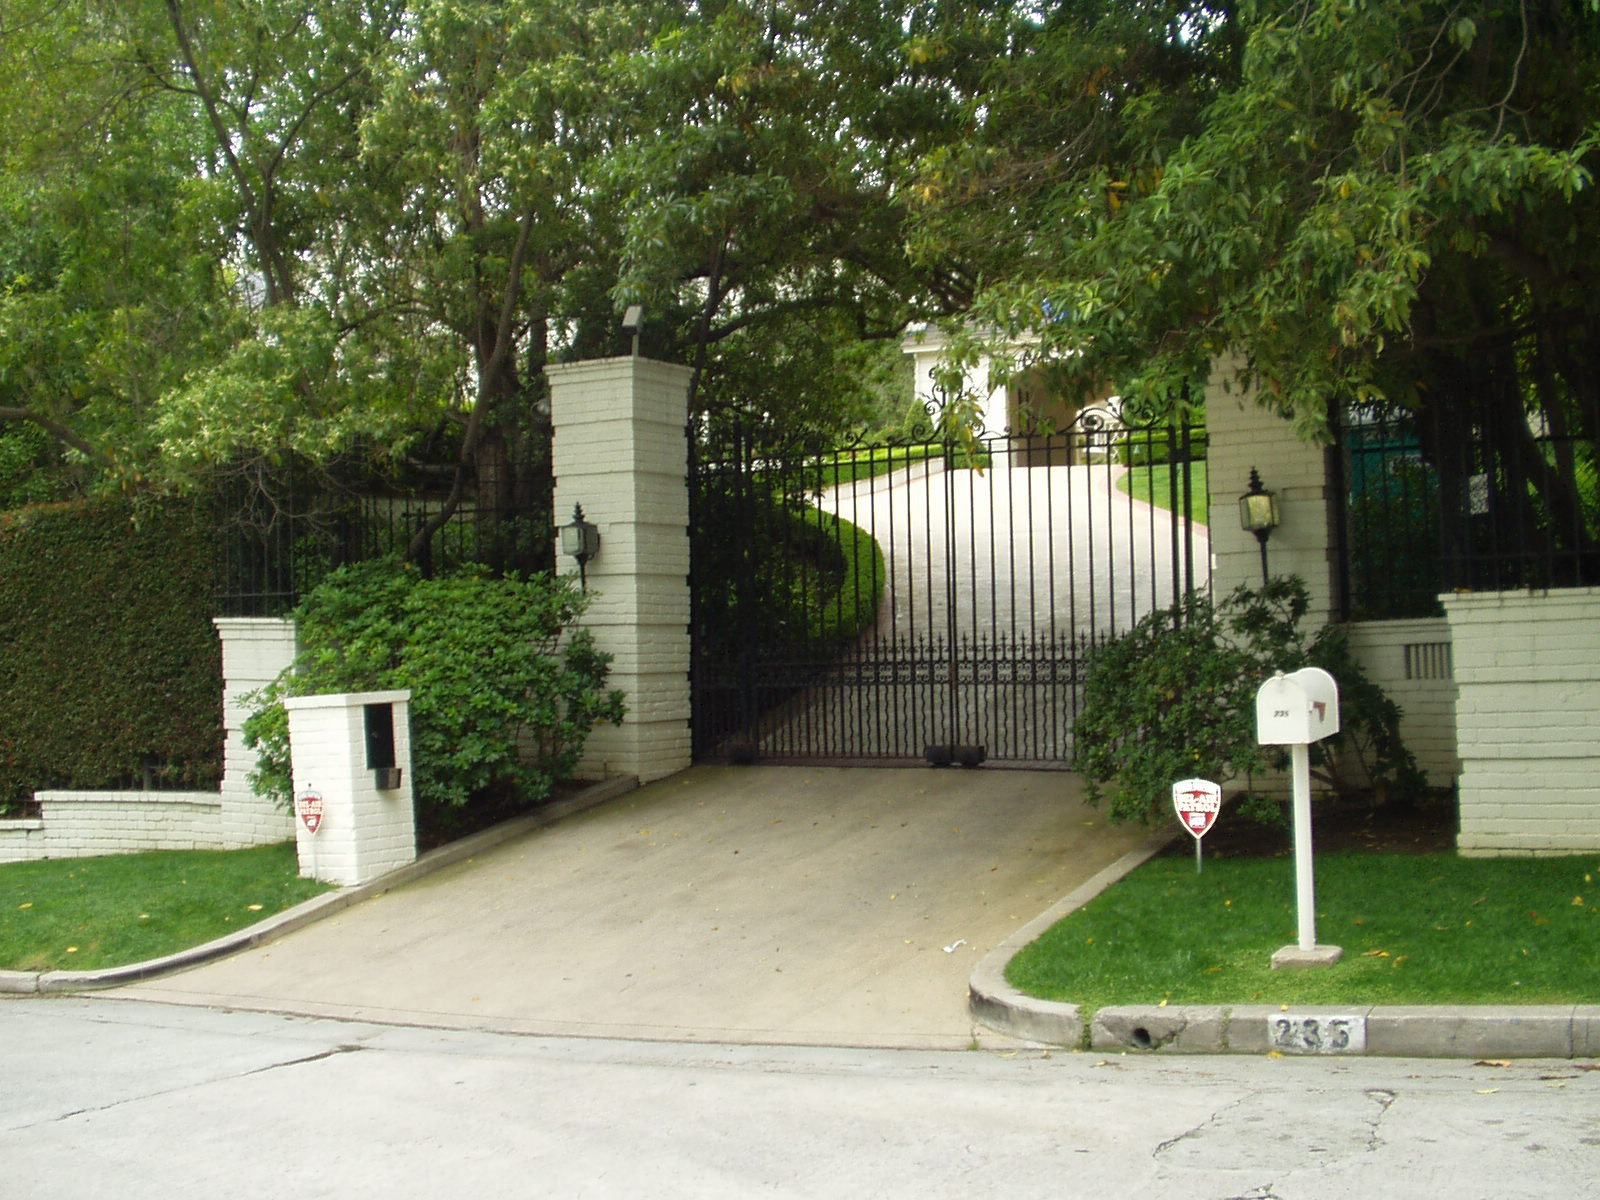 Celebrity Driveways of the Rich and Famous By Debbie Burton